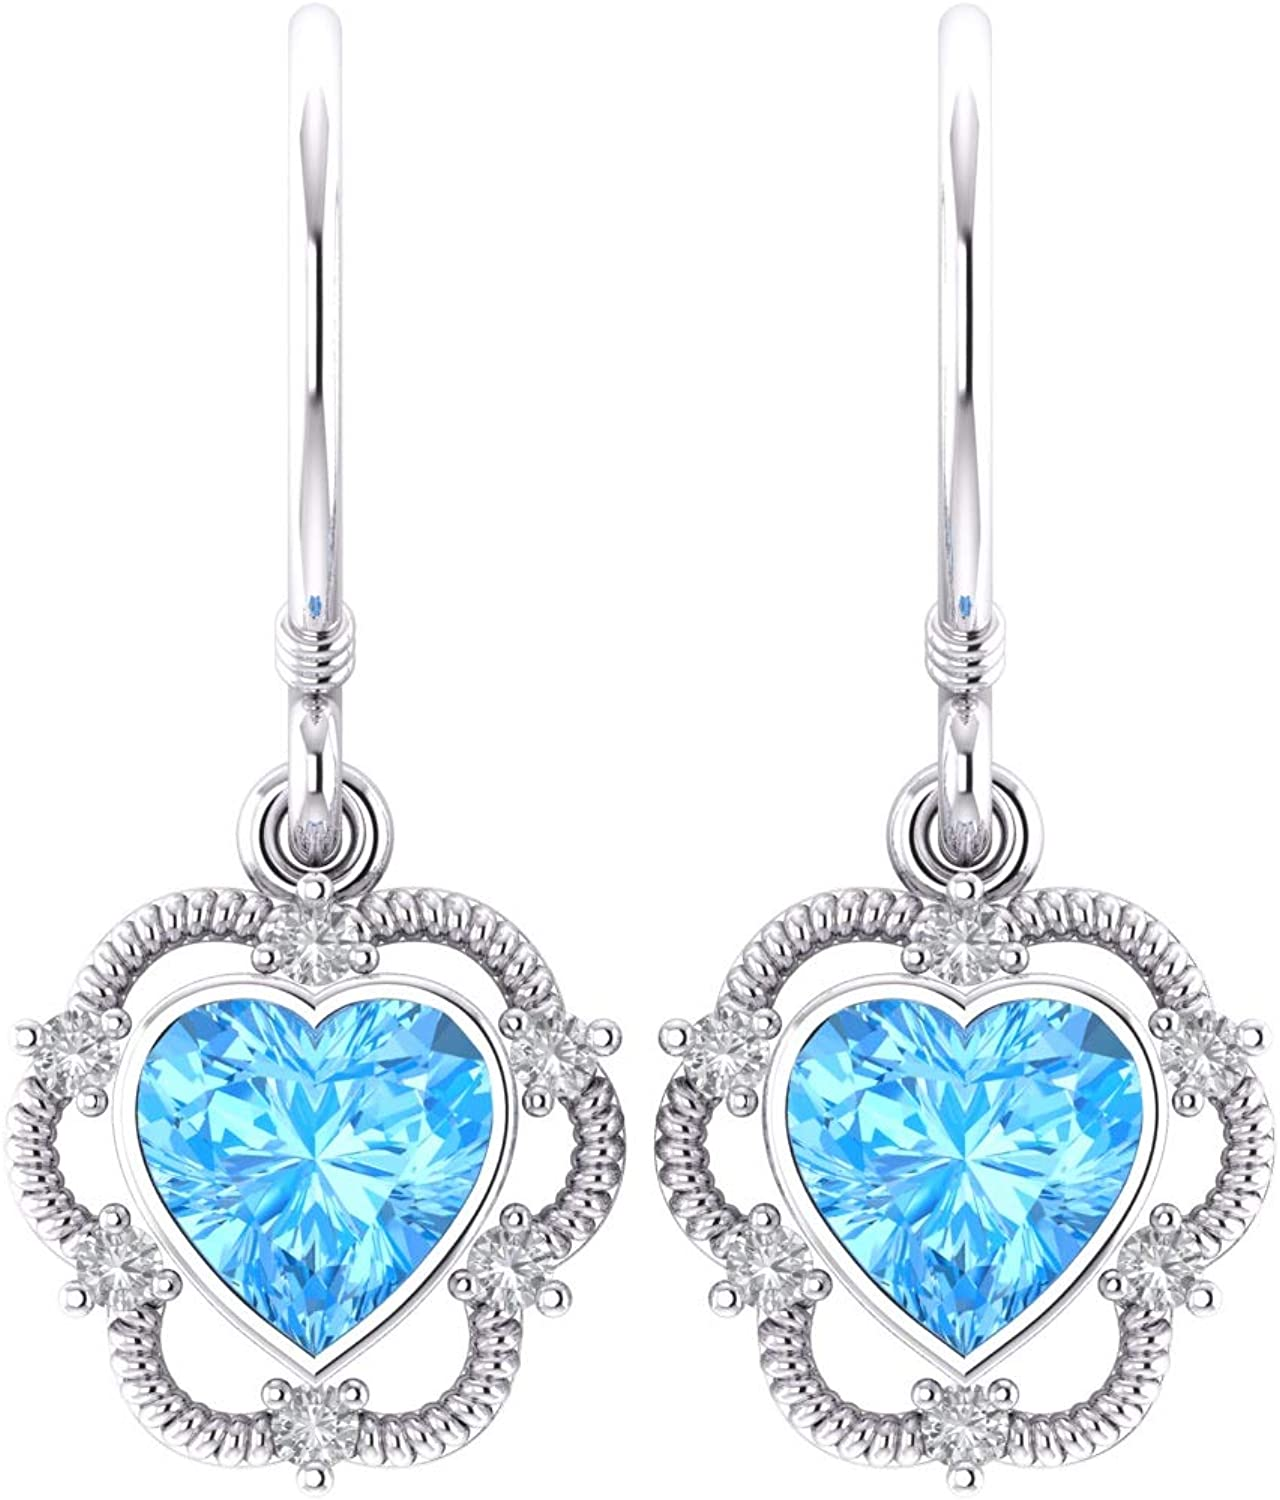 Details about  /925 Sterling Silver Jewelry Natural Swiss Blue Topaz Ring Earring Necklace Set